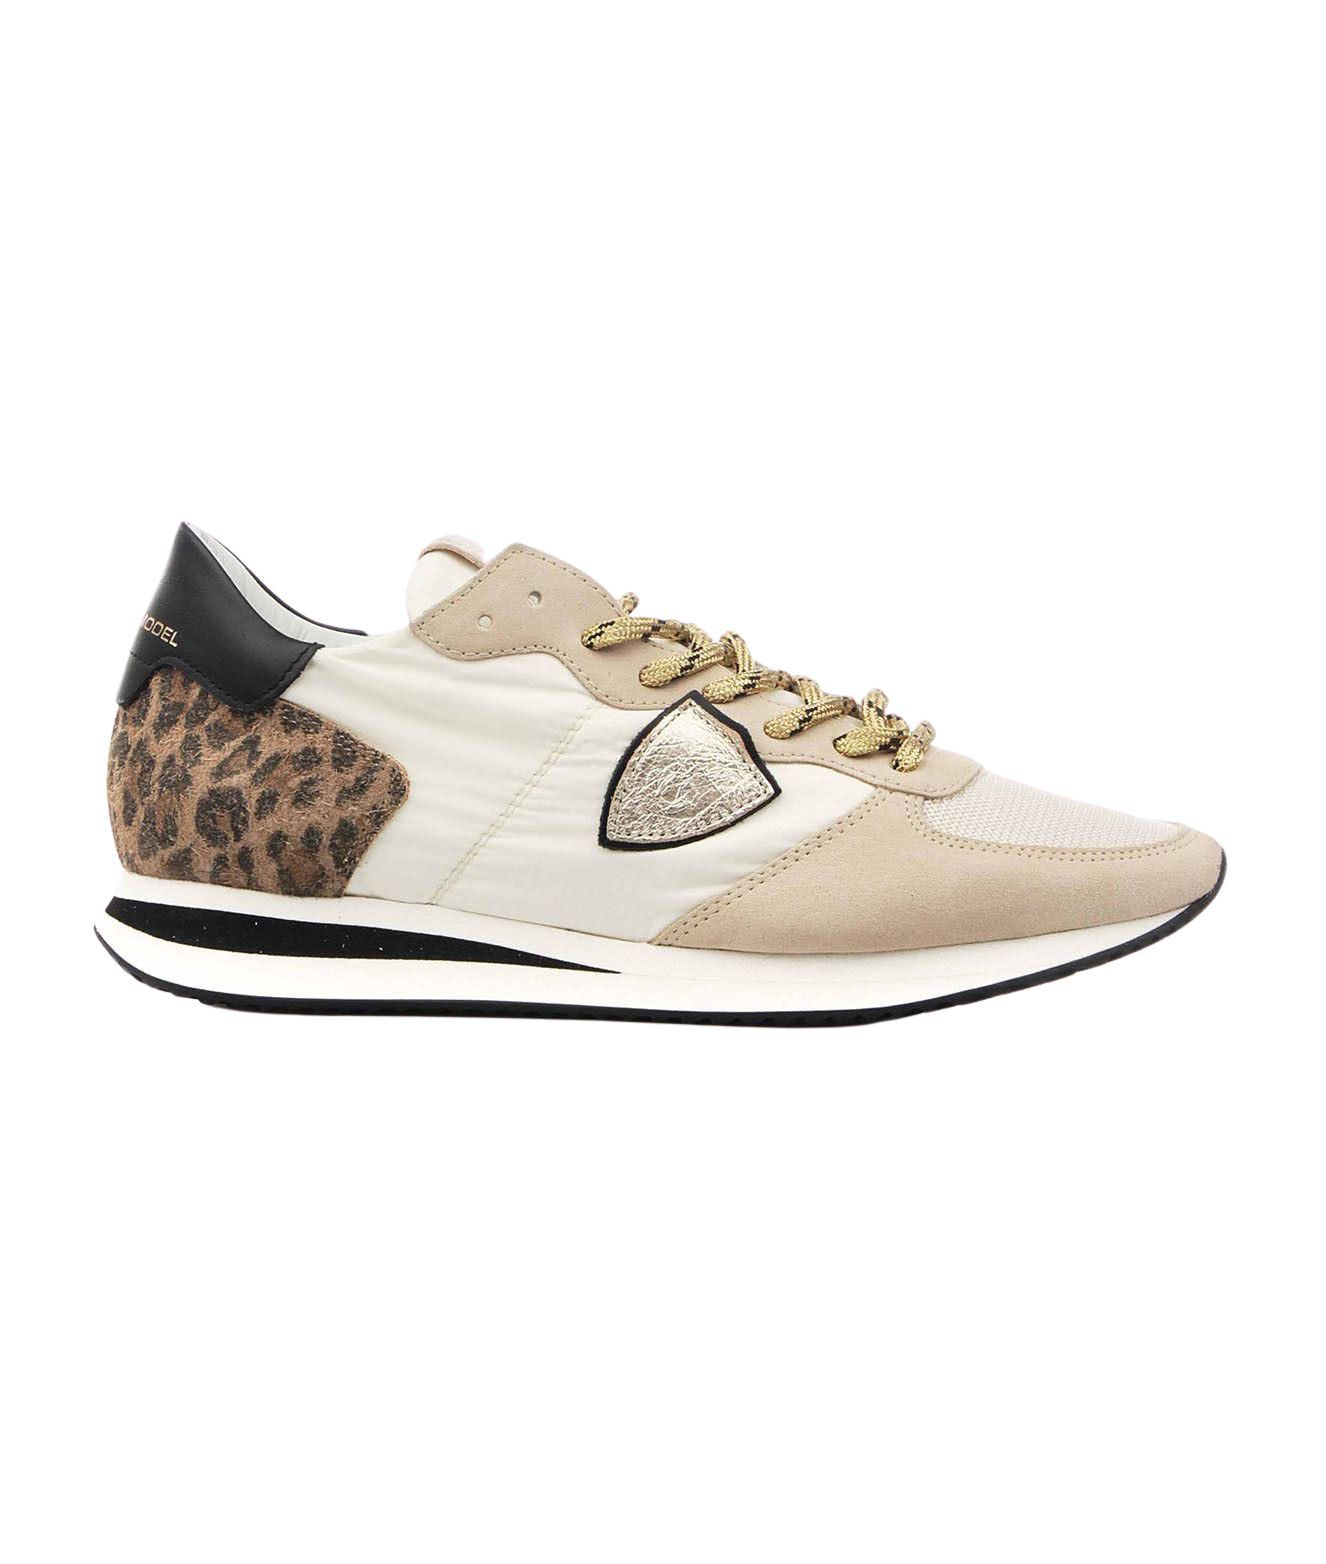 Philippe Model PHILIPPE MODEL WOMEN'S TZLDWA11 BEIGE OTHER MATERIALS SNEAKERS